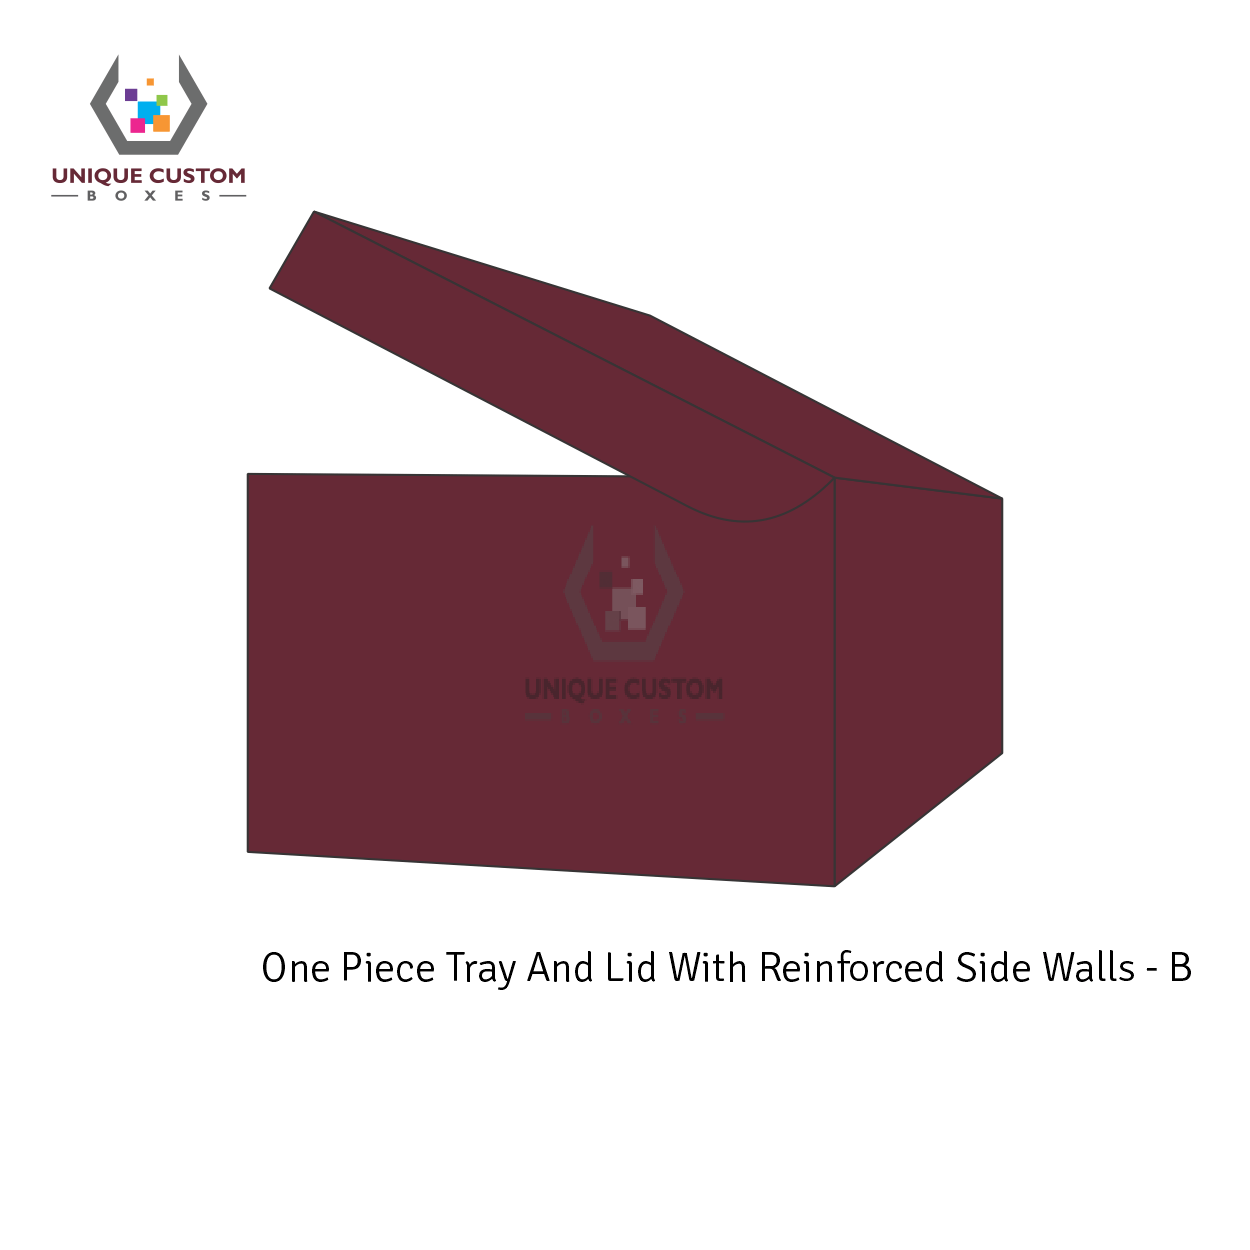 One-Piece-Tray-And-Lid-With-Reinforced-Side-Walls-2